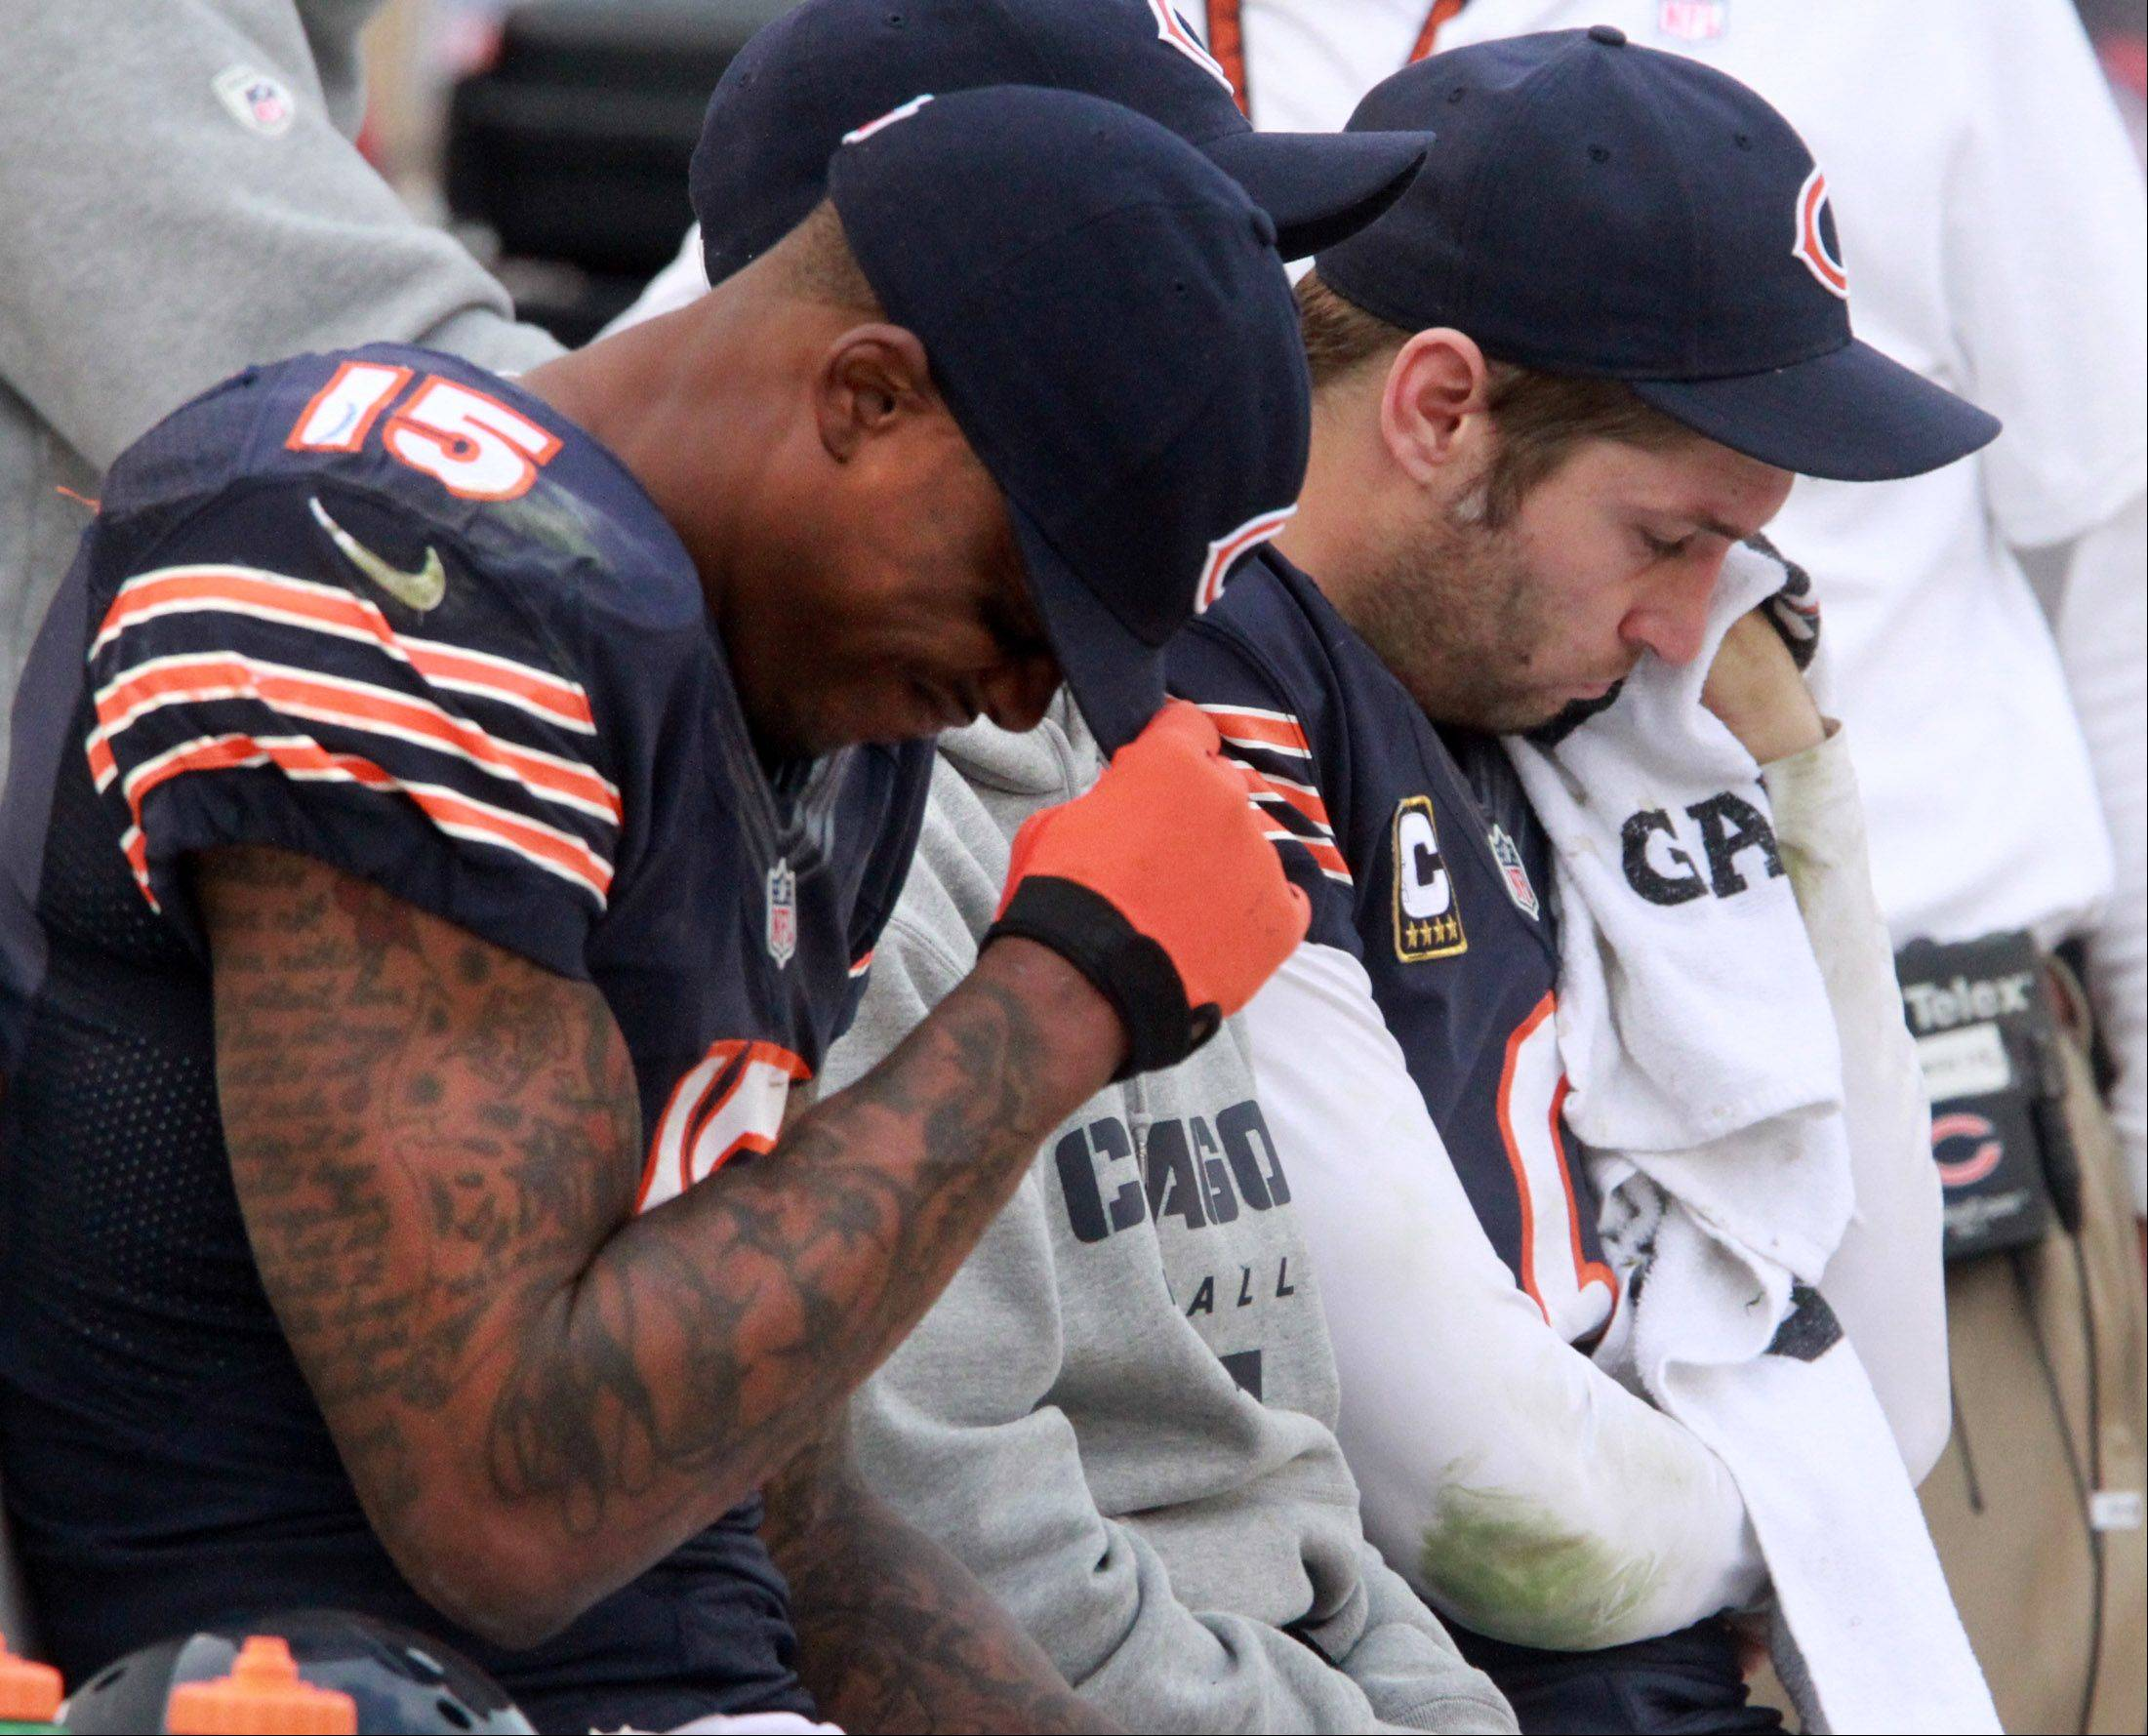 Chicago Bears wide receiver Brandon Marshall and quarterback Jay Cutler sit sullen on the bench as the Seattle Seahawks score a touchdown at Soldier Field on Sunday. The Bears lost in overtime 23-17.